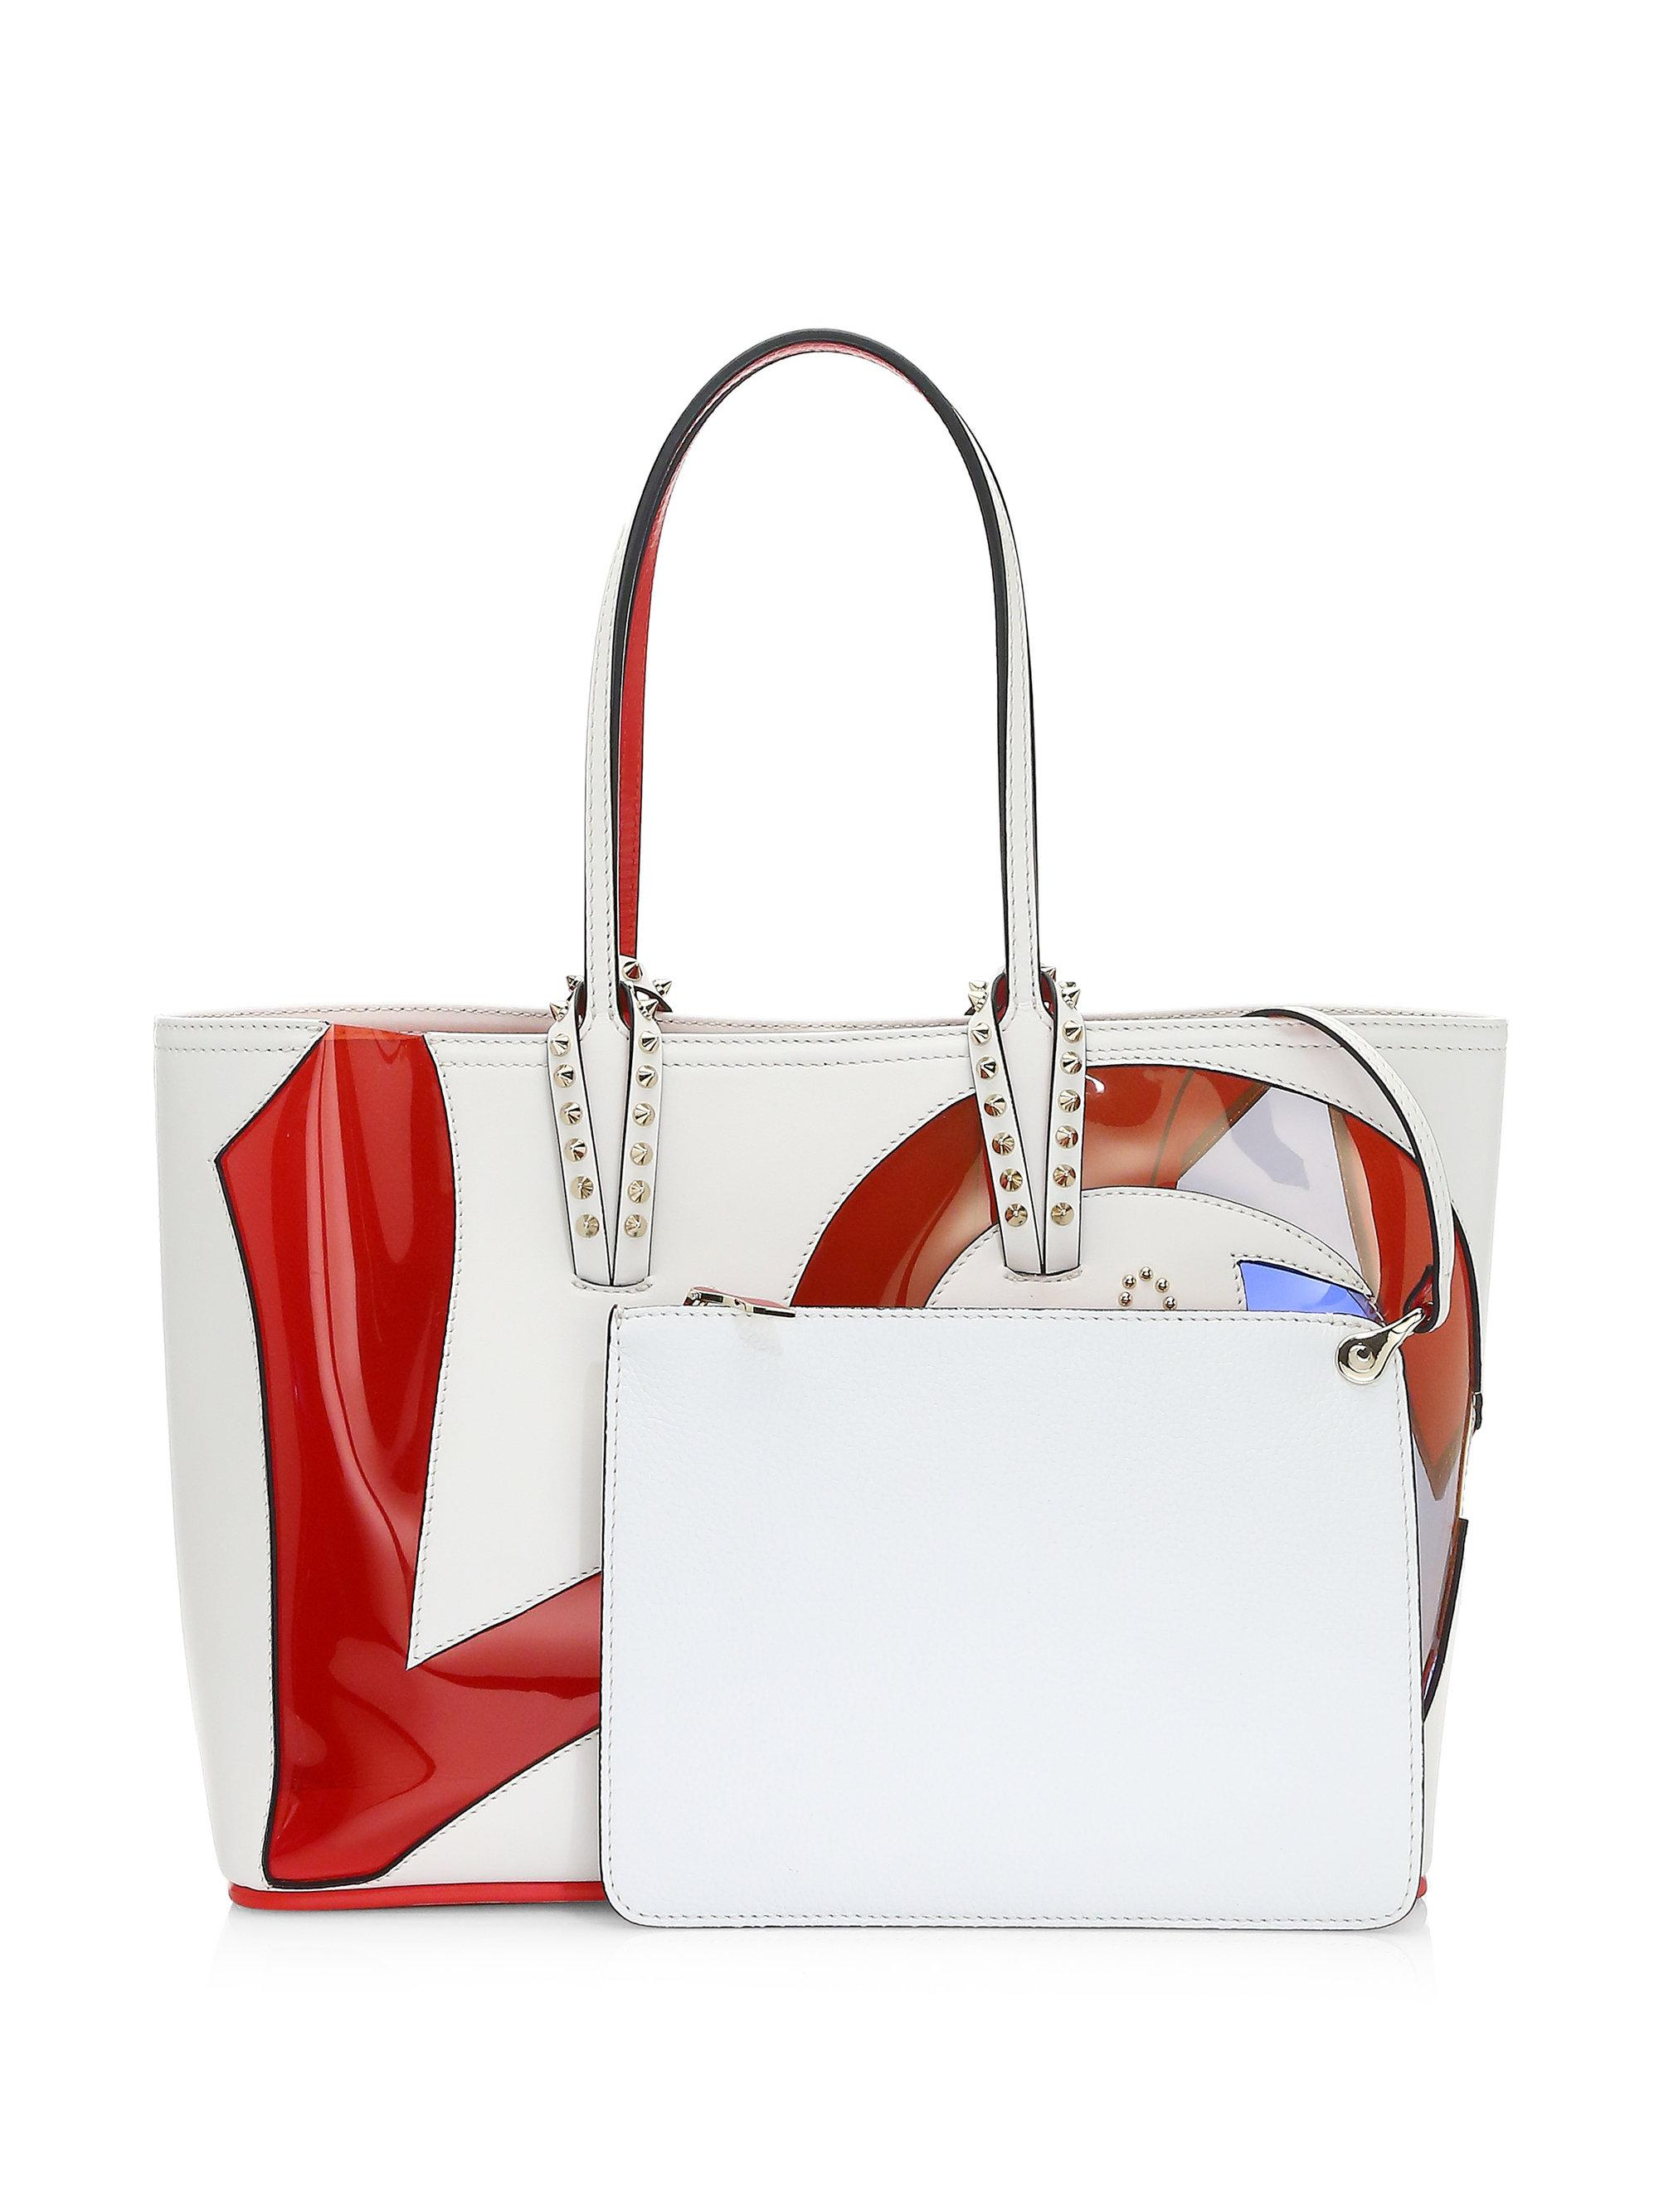 2599a9b0f5a Christian Louboutin Red Cabata Love Calf Paris Tote Bag